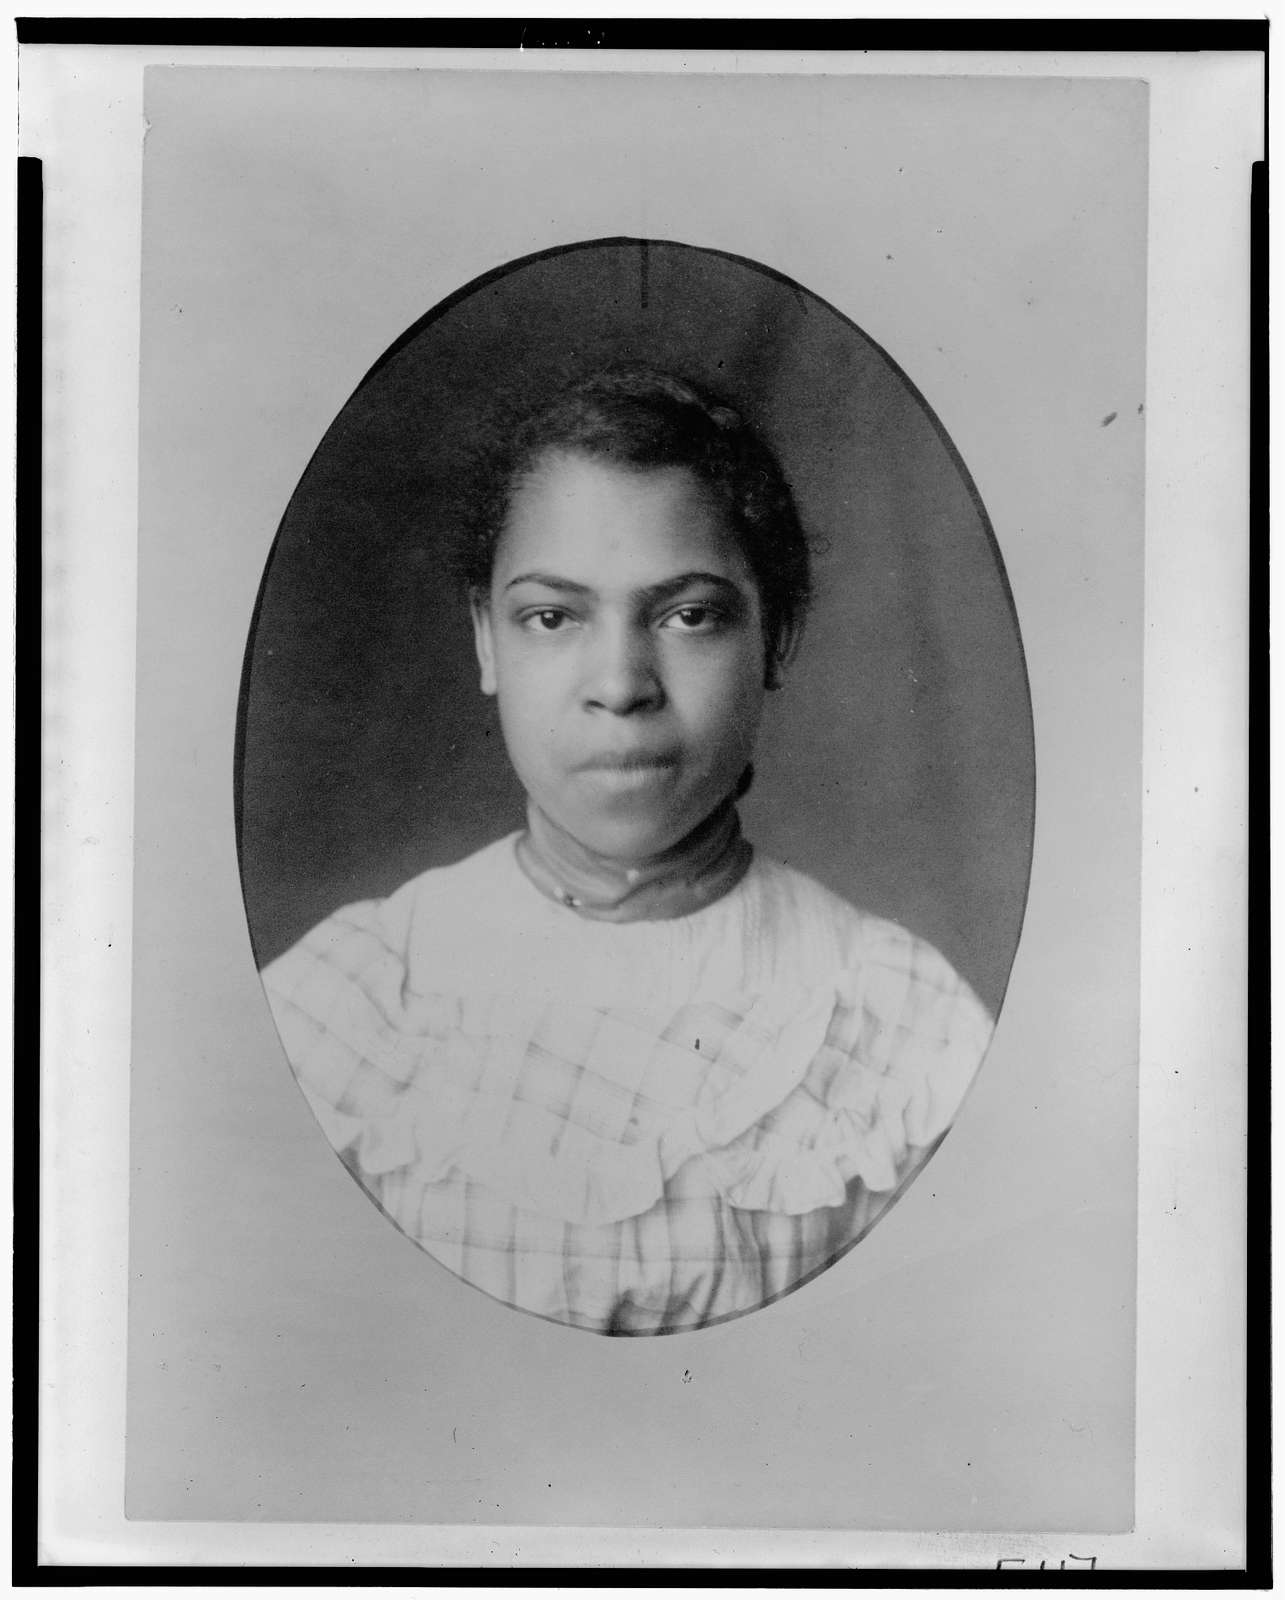 [African American girl, head-and-shoulders portrait, facing front]